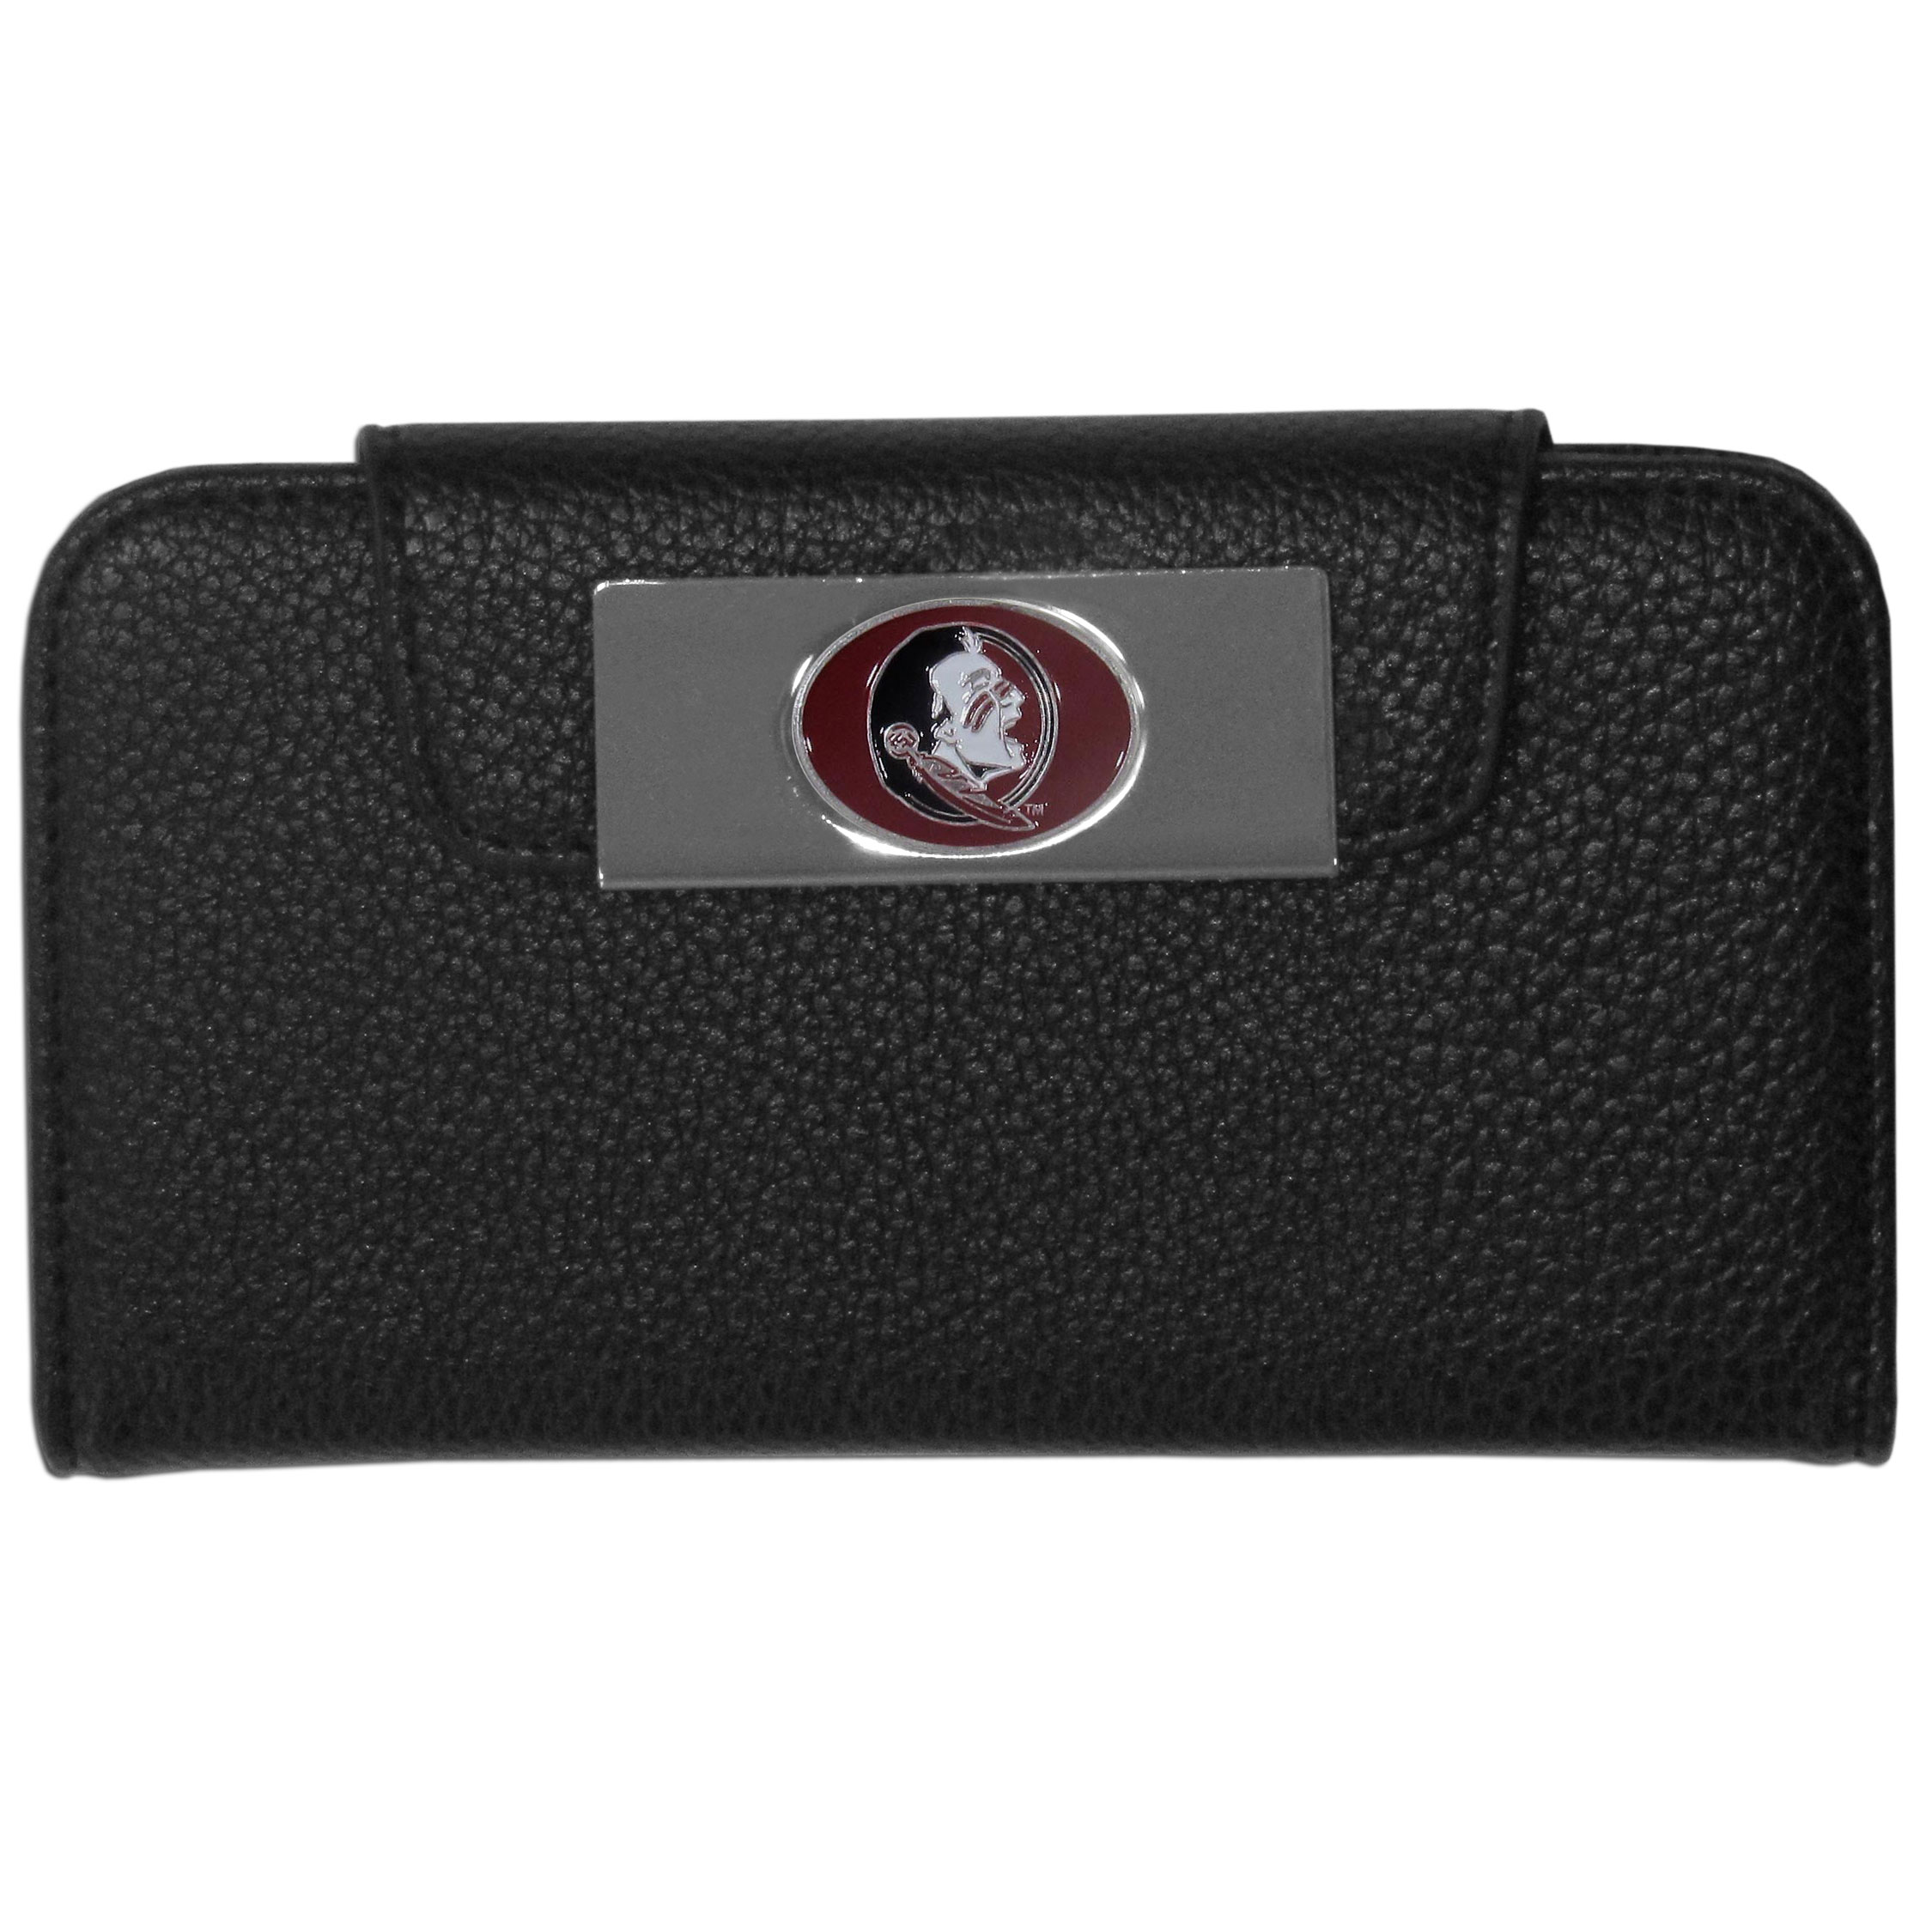 Florida St. Seminoles iPhone 5/5S Wallet Case - This new & wildly popular case is ideal for those who like to travel light! The stylish case has an inner hard shell that securely holds your phone while allowing complete access to the phone's functionality. The flip cover has slots for credit cards, business cards and identification. The magnetic flip cover has a metal Florida St. Seminoles emblem on a high polish chrome backing. Fits the iPhone 5/5S